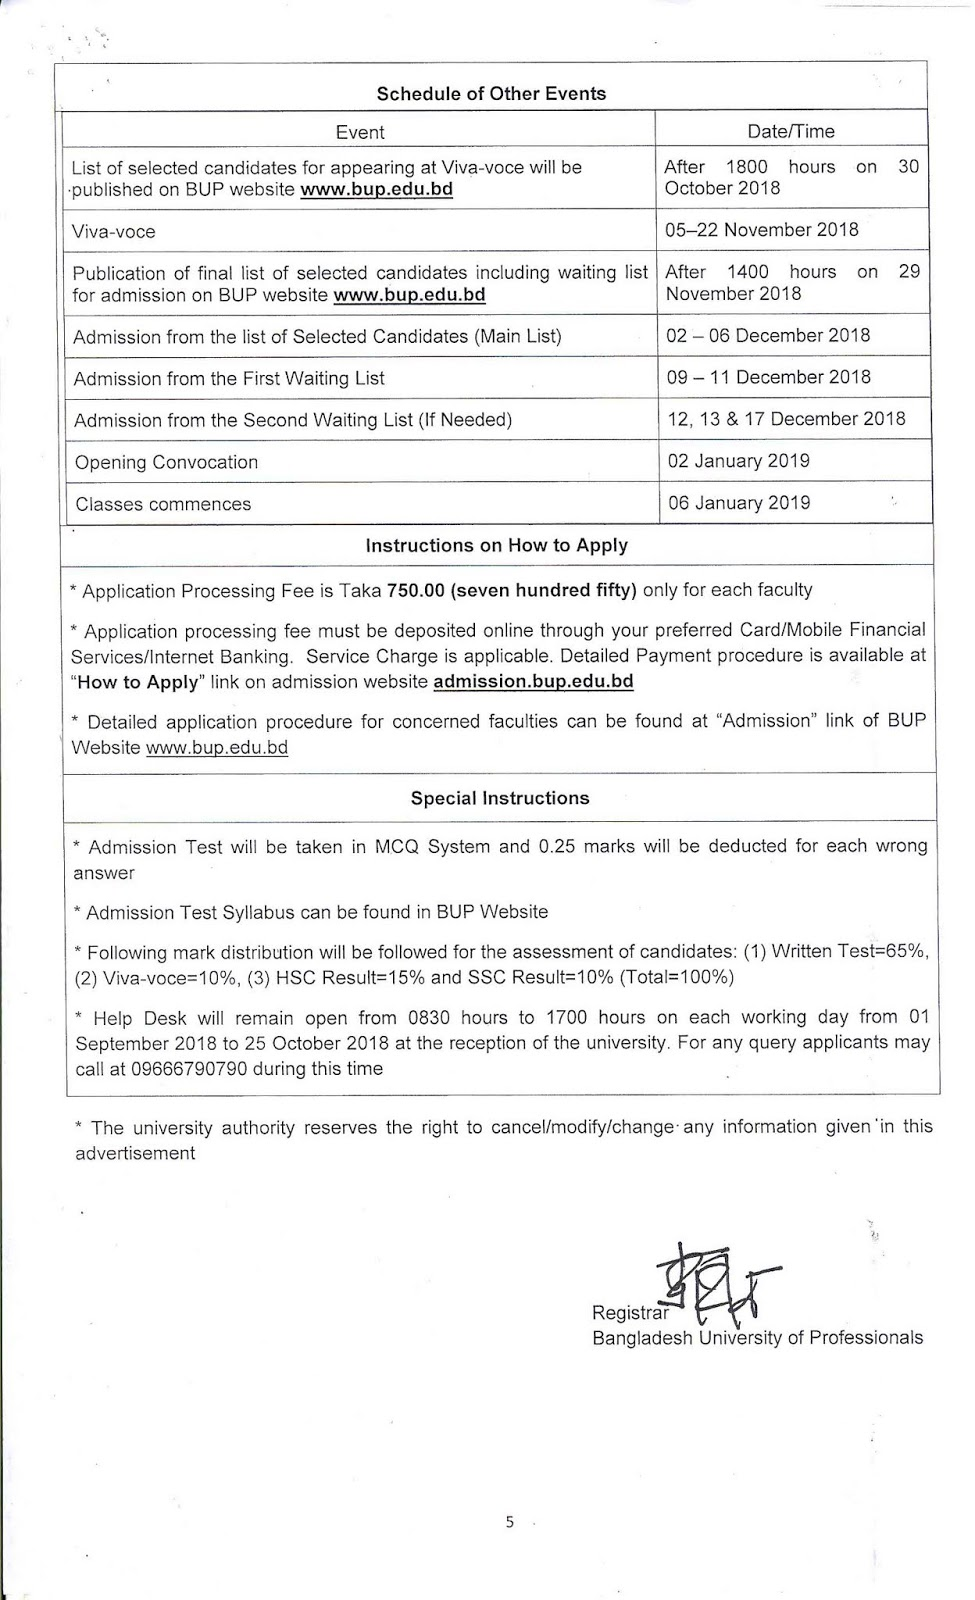 Bangladesh University of Professionals (BUP) Admission circular 2018-2019